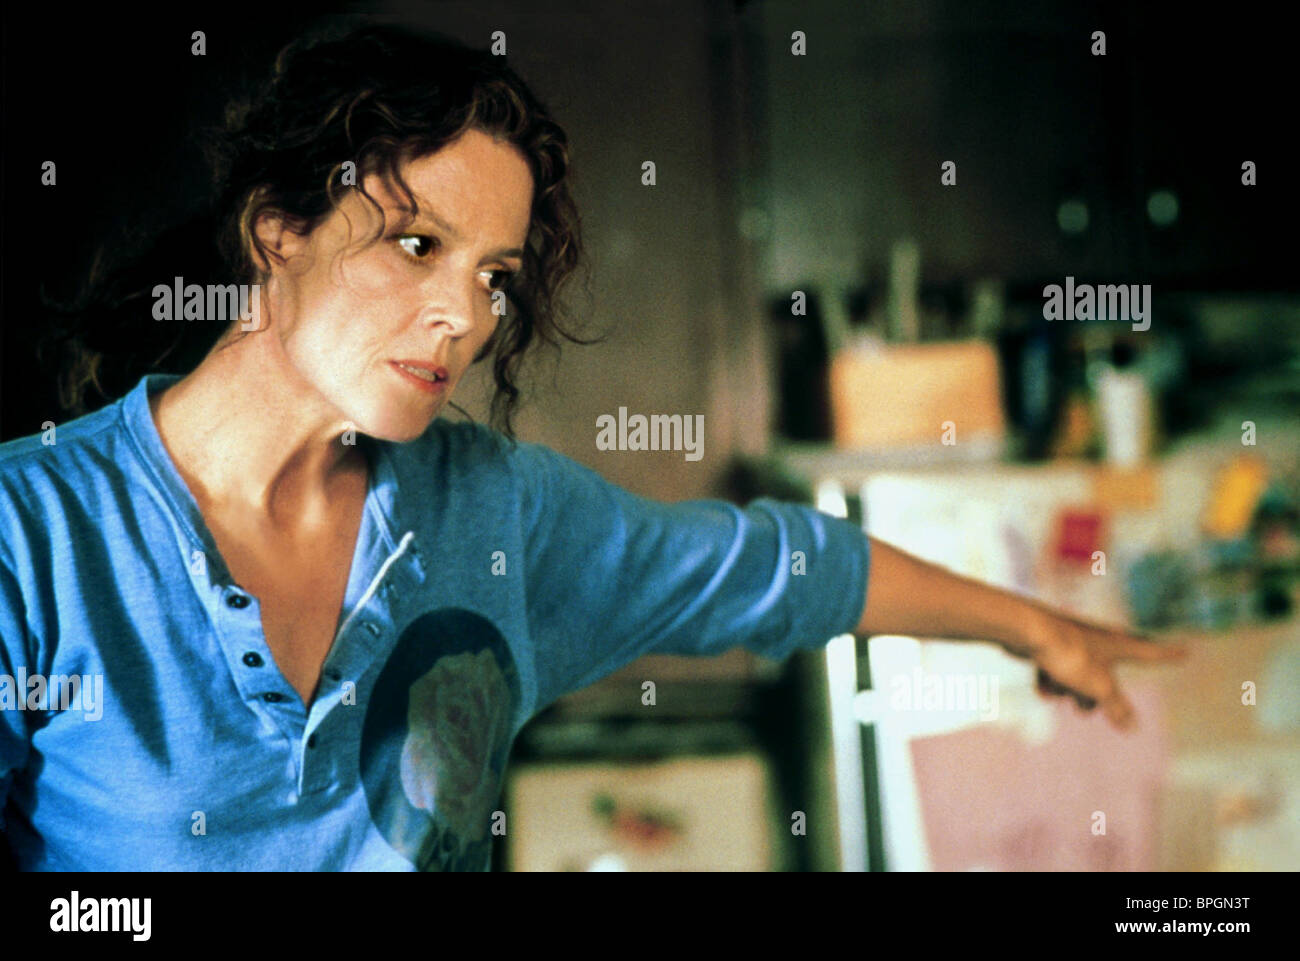 SIGOURNEY WEAVER A MAP OF THE WORLD (1999 Stock Photo: 31100604